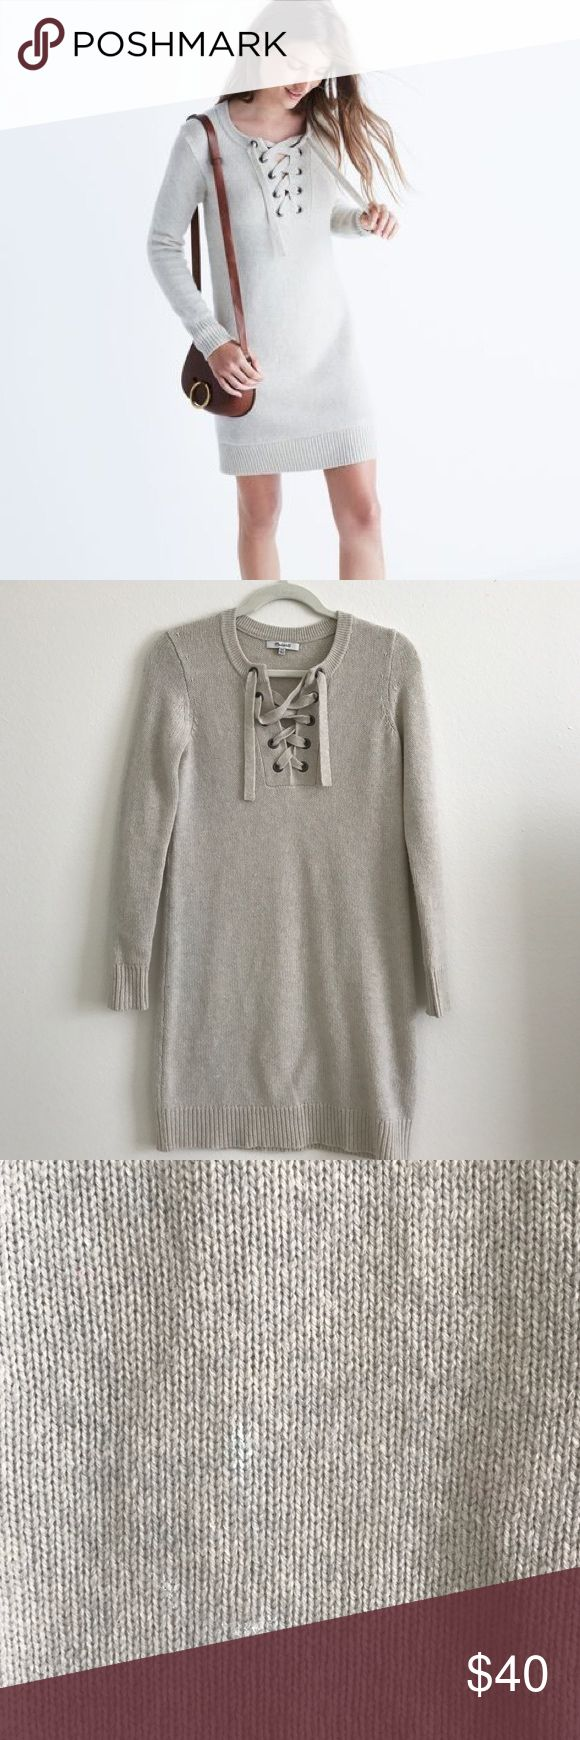 Madewell lace up sweater dress in cream size XXS This sweater dress was worn once on Christmas. I never reached for it again because it's a bit heavy for Southern California weather. It's a size XXS but fits a XS much better. There is a small blemish that I pictured in photo 3. It's not noticeable but I think it can be removed with dry cleaning. Price already reflects cost to dry clean if purchaser wishes to! Madewell Dresses